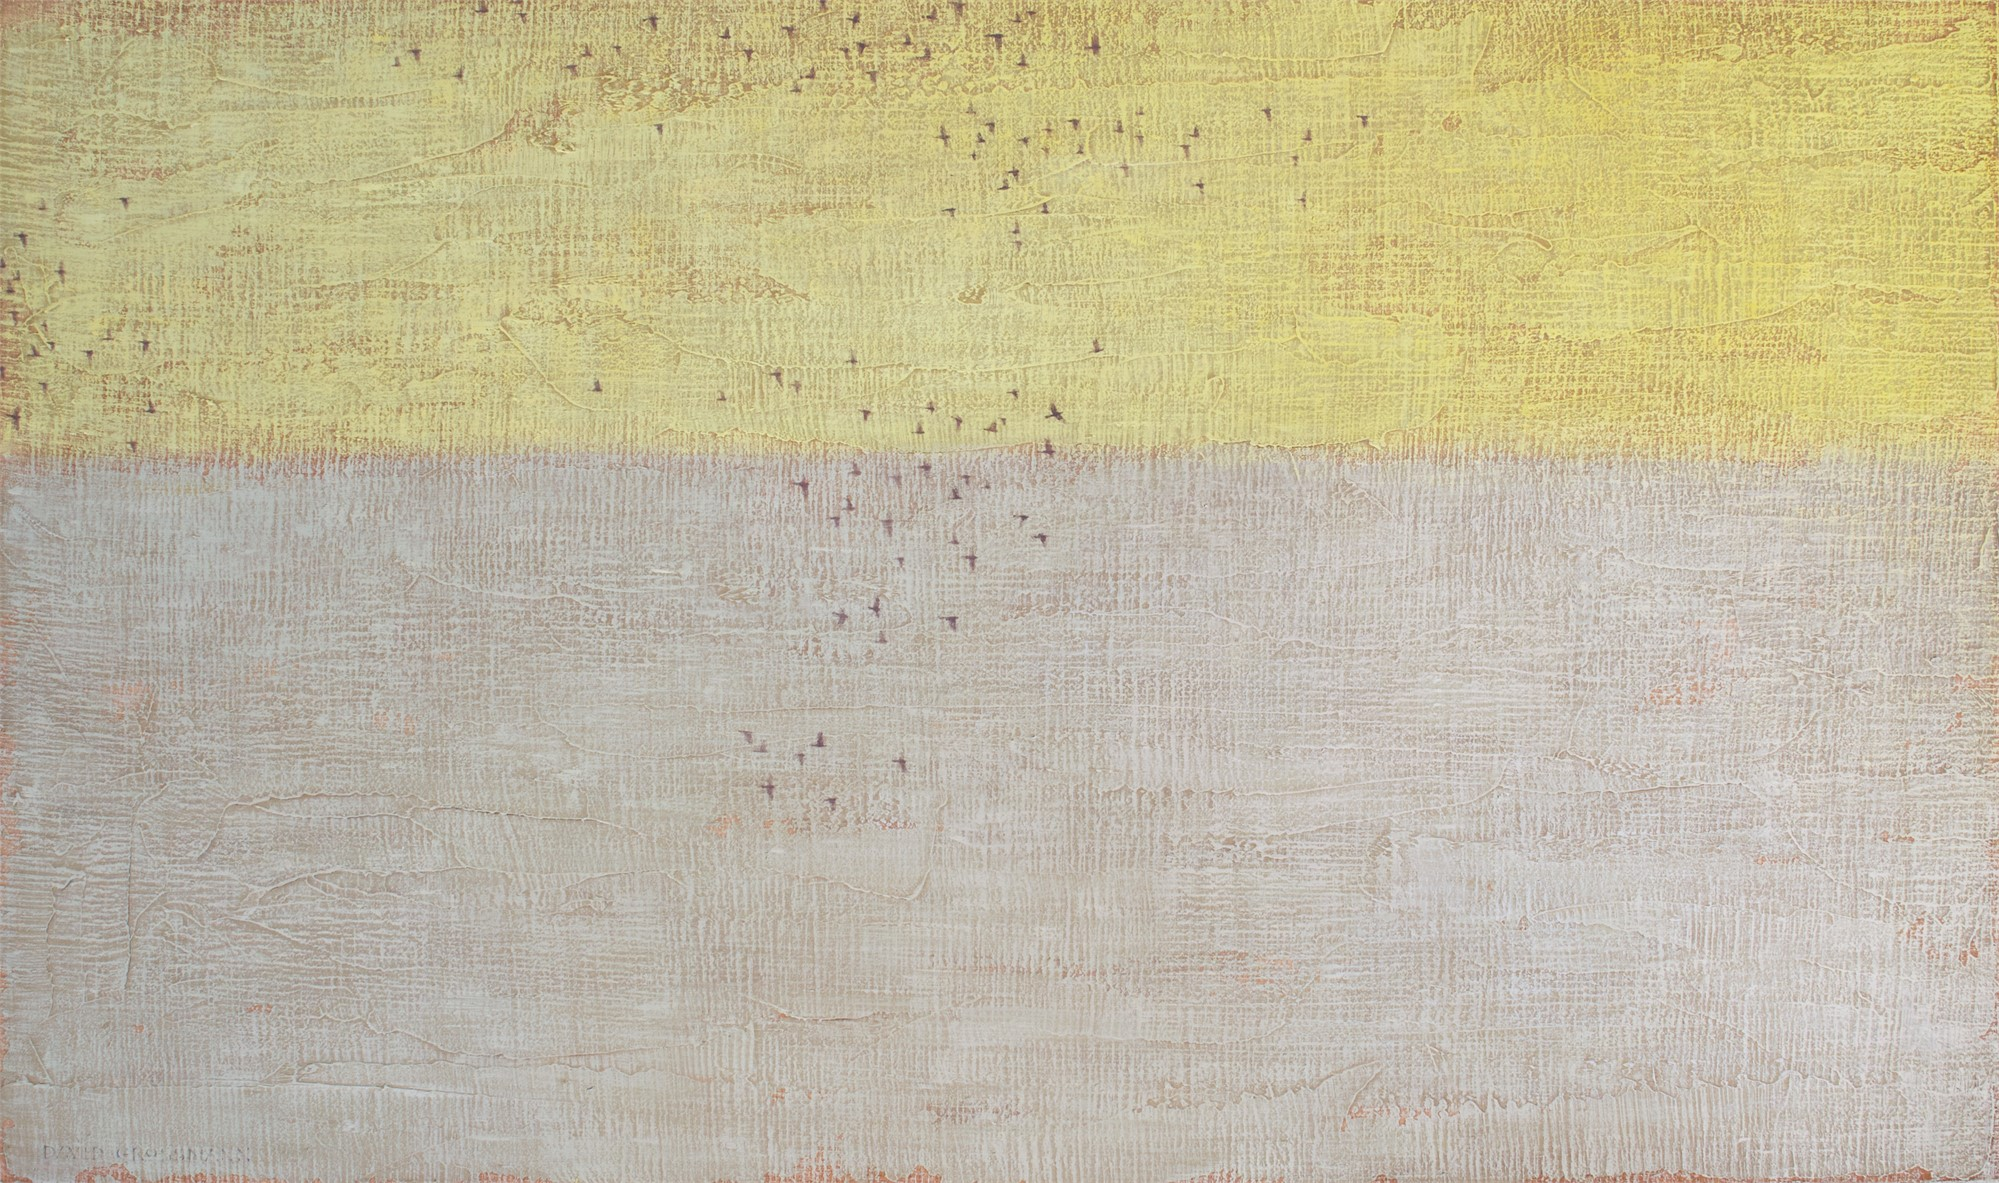 Winter Birds by David Grossmann